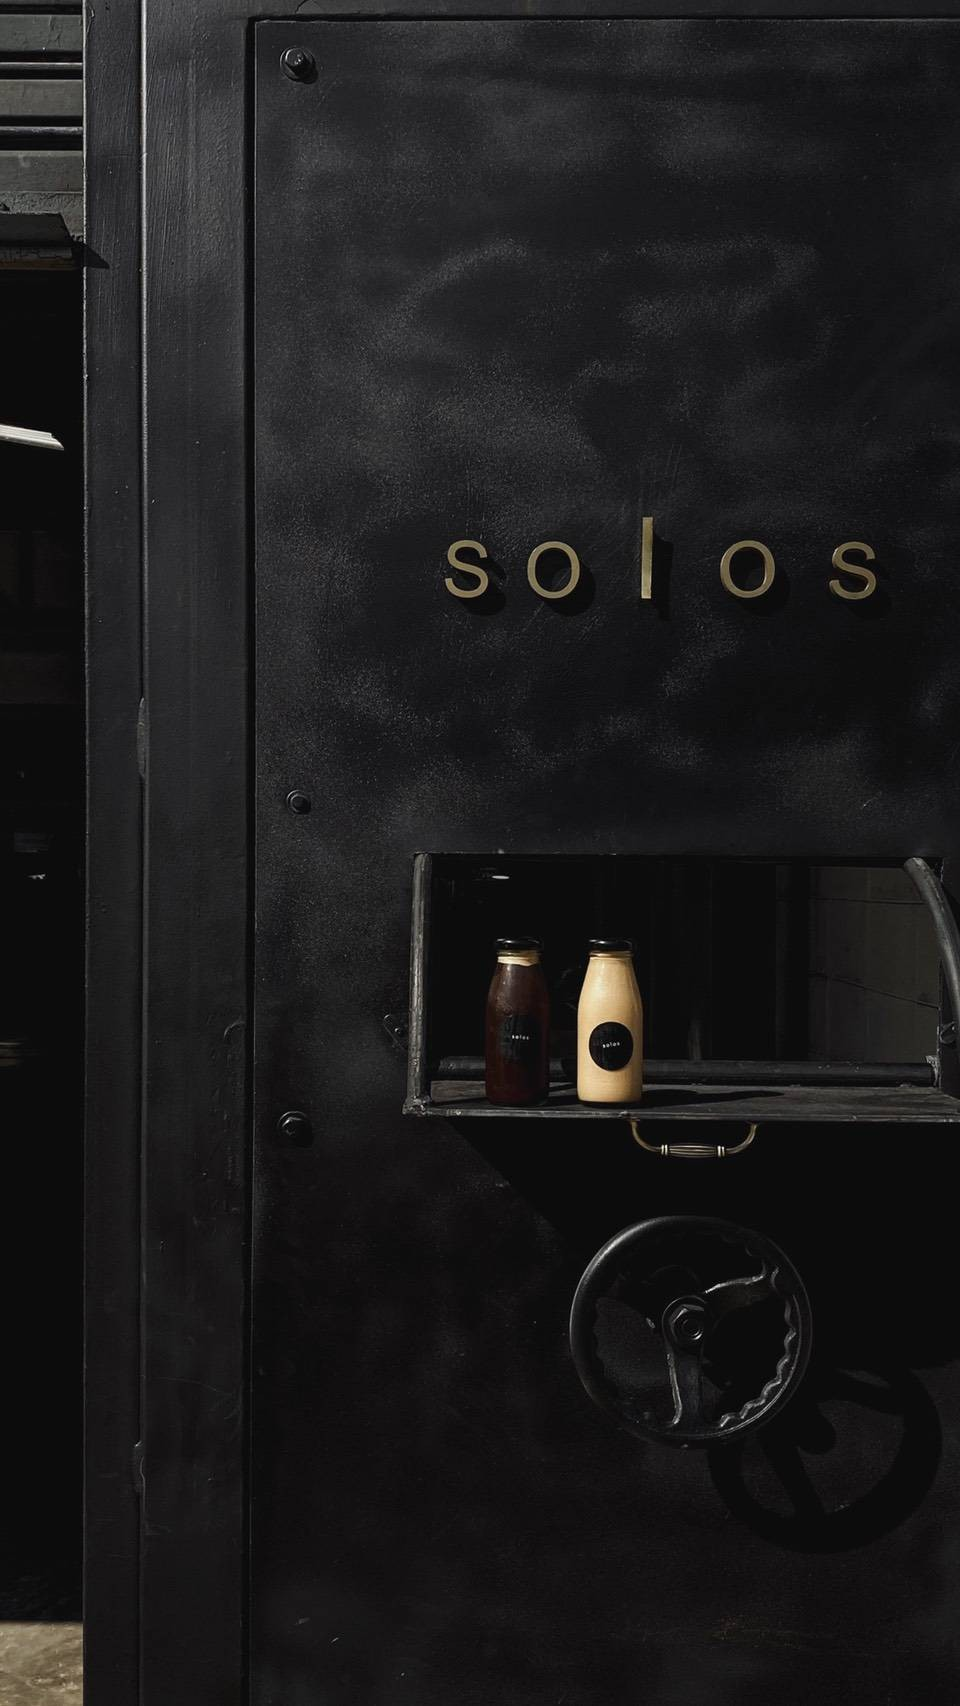 solos coffee